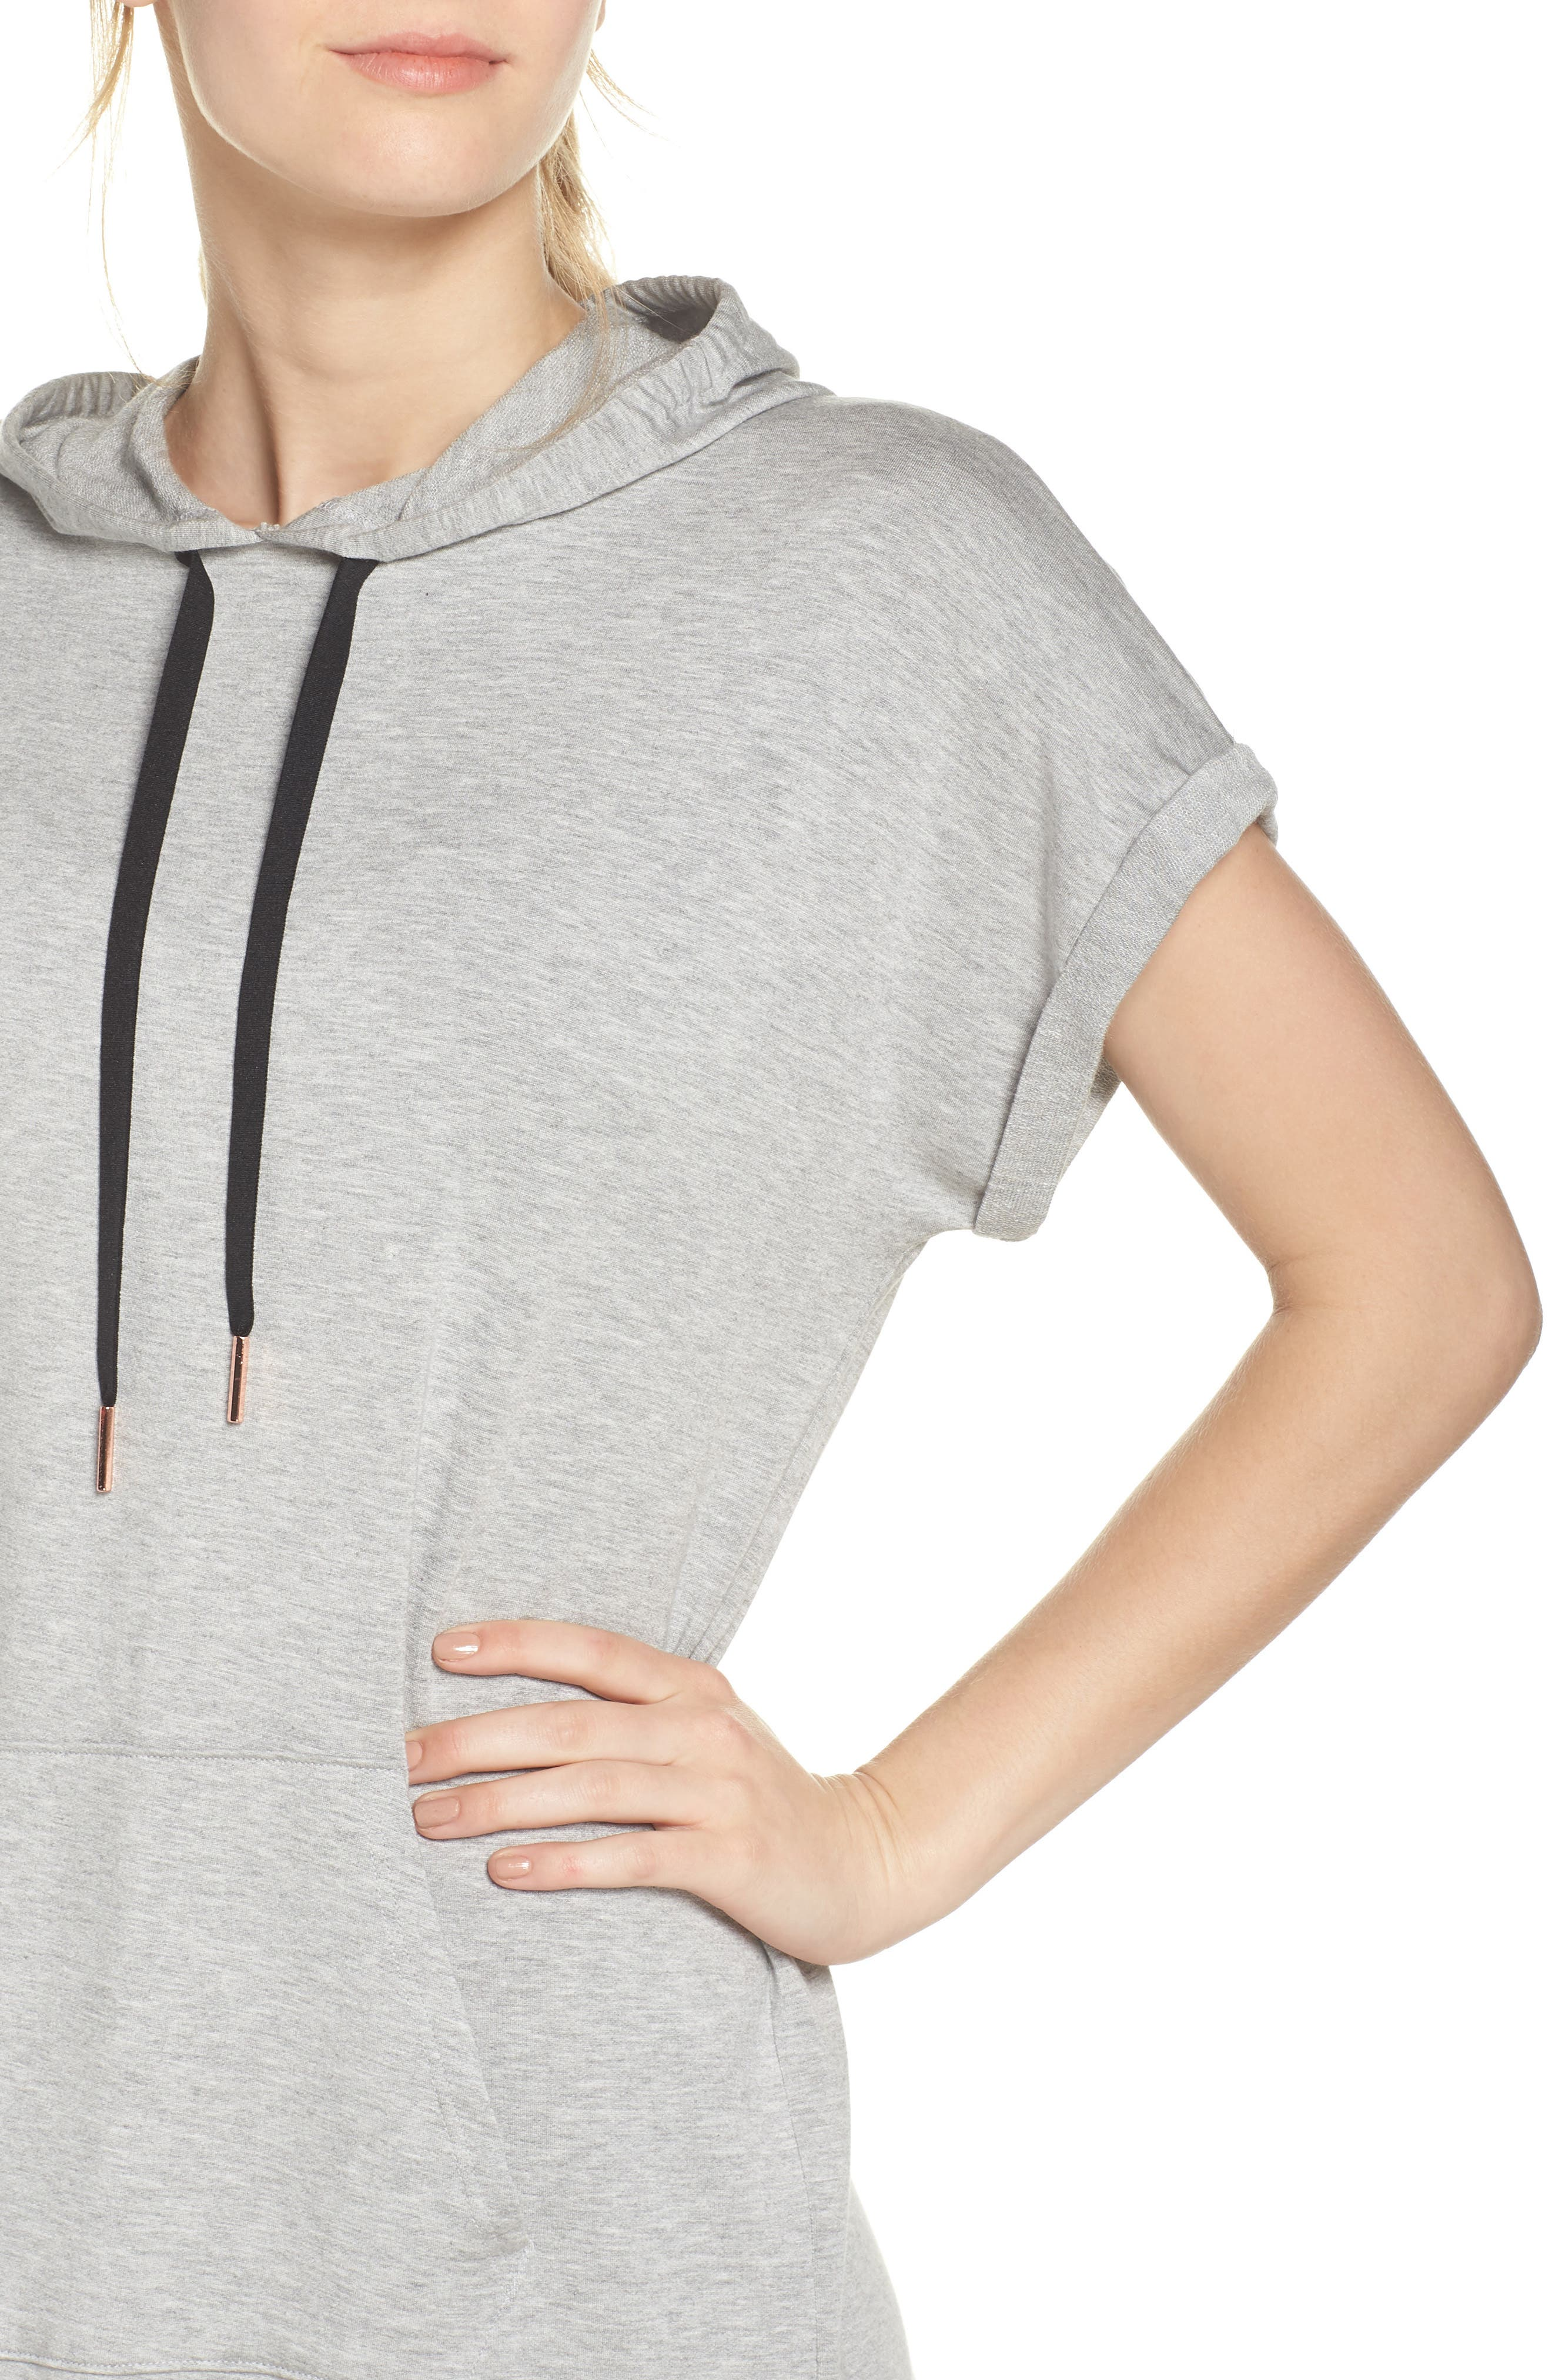 It's All Hoodie Hooded Sweatshirt Dress,                             Alternate thumbnail 4, color,                             Light Heather Gray